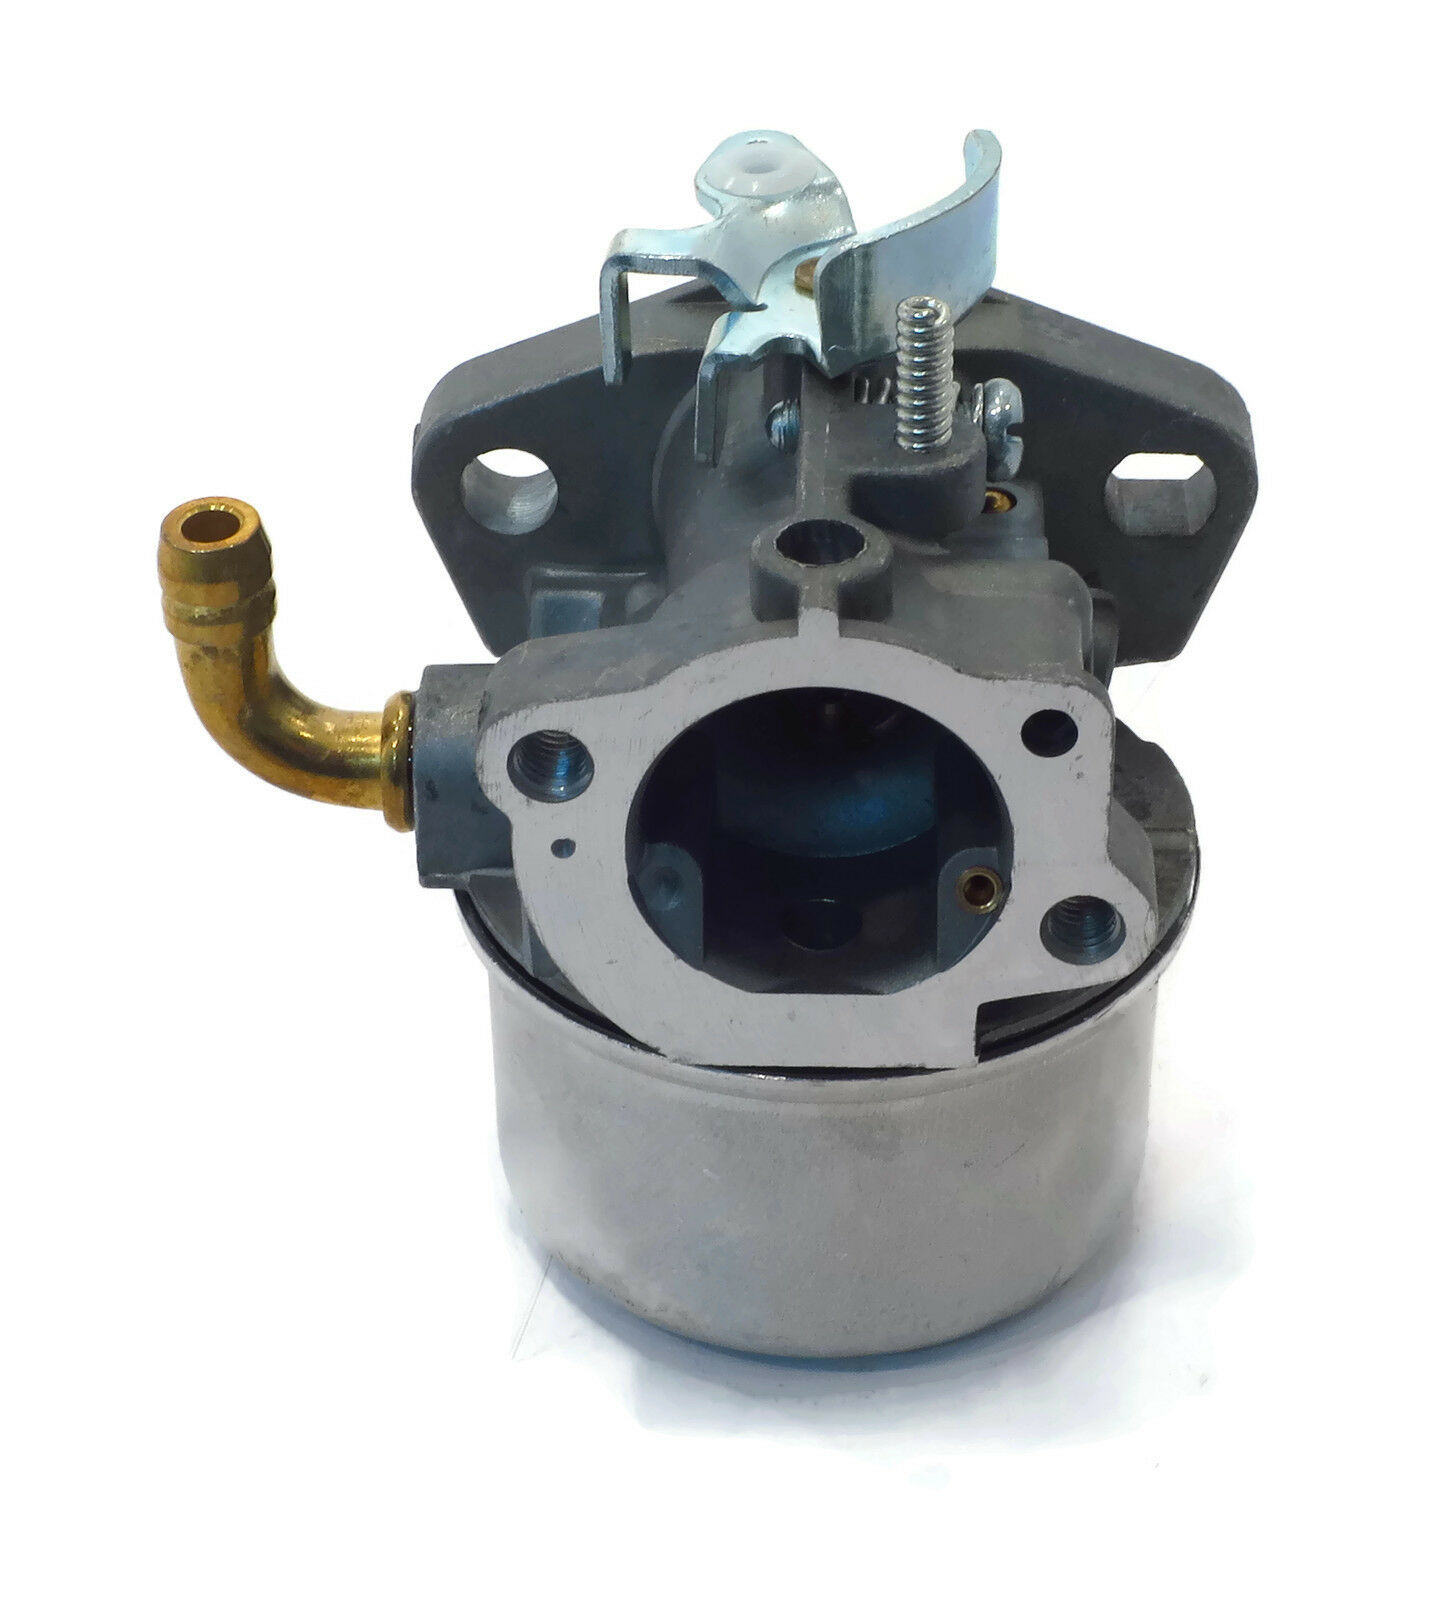 Details about CARBURETOR CARB for Briggs & Stratton 124432 126302 126312  126317 126332 126352